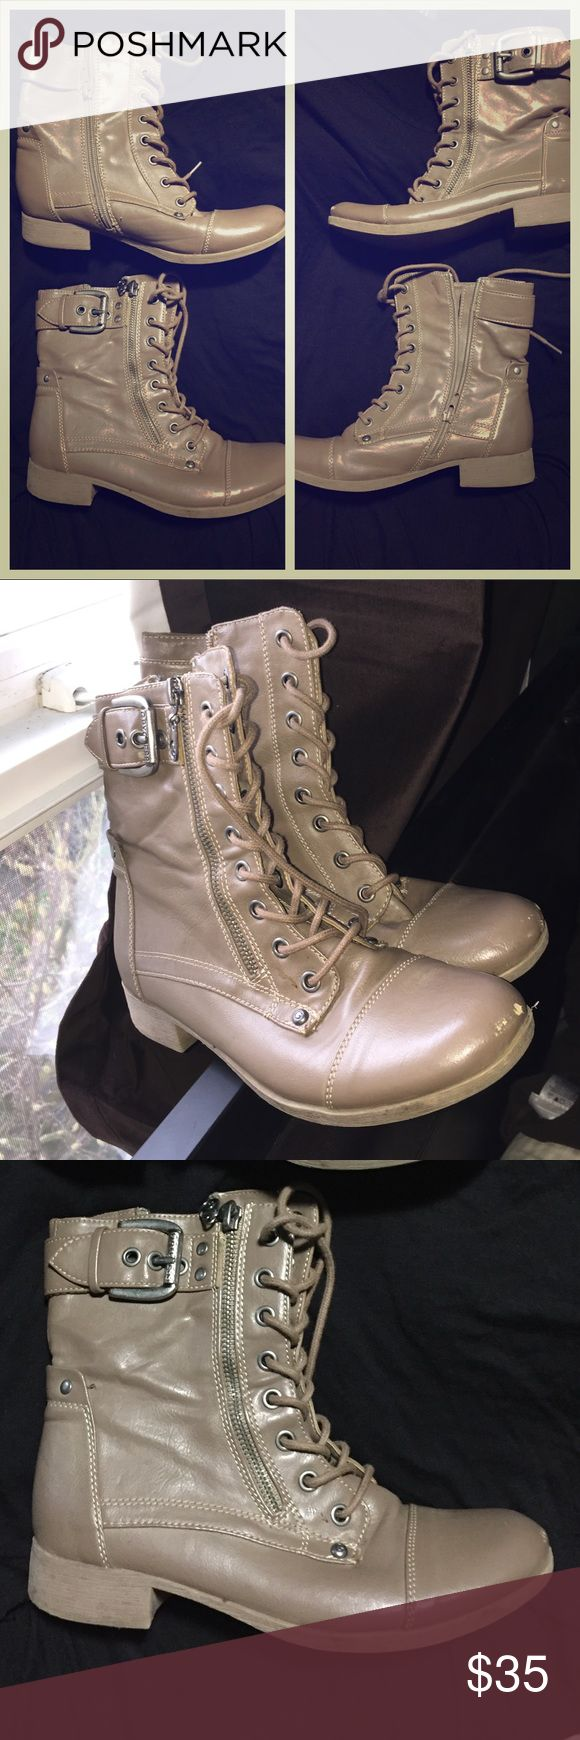 G by Guess shoes size 6 tan Adorable shoes! Scuffs on the toes :) G by Guess Shoes Lace Up Boots